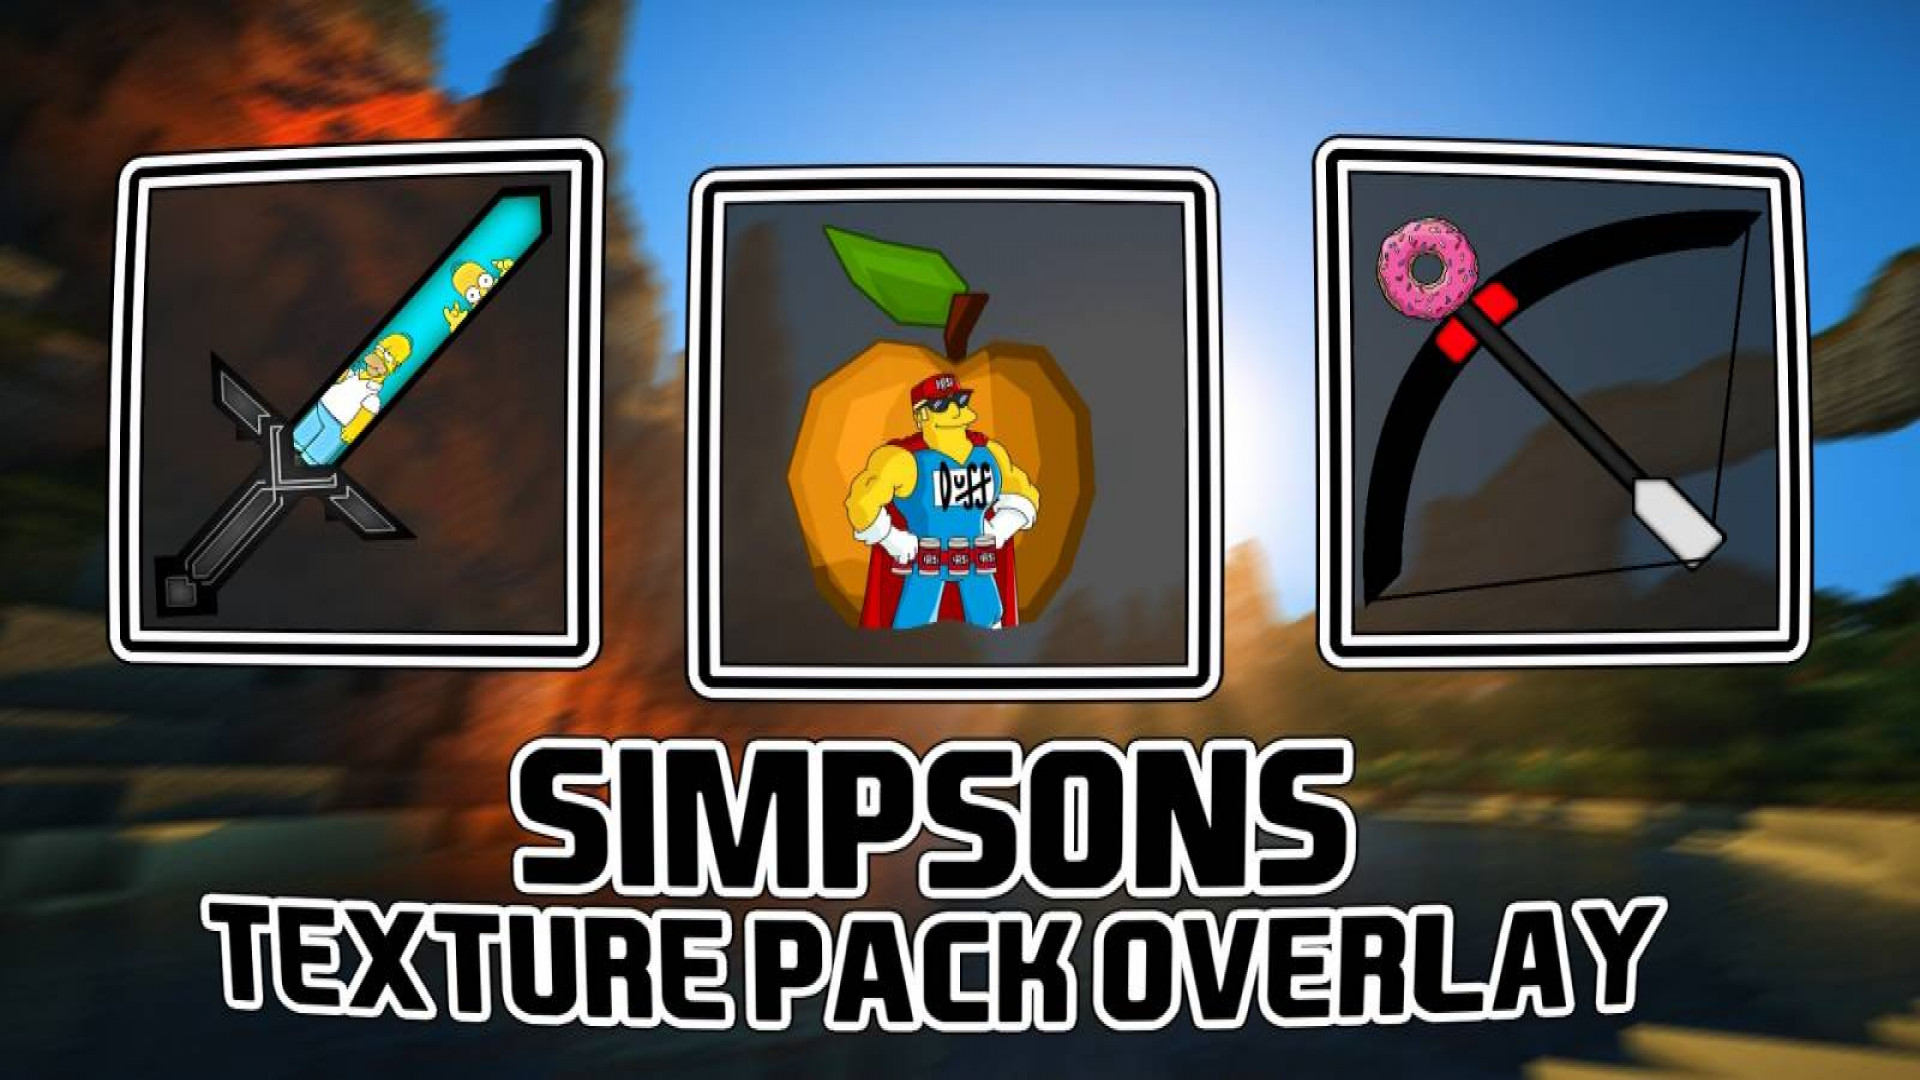 Simpsons Texture Pack Overlay